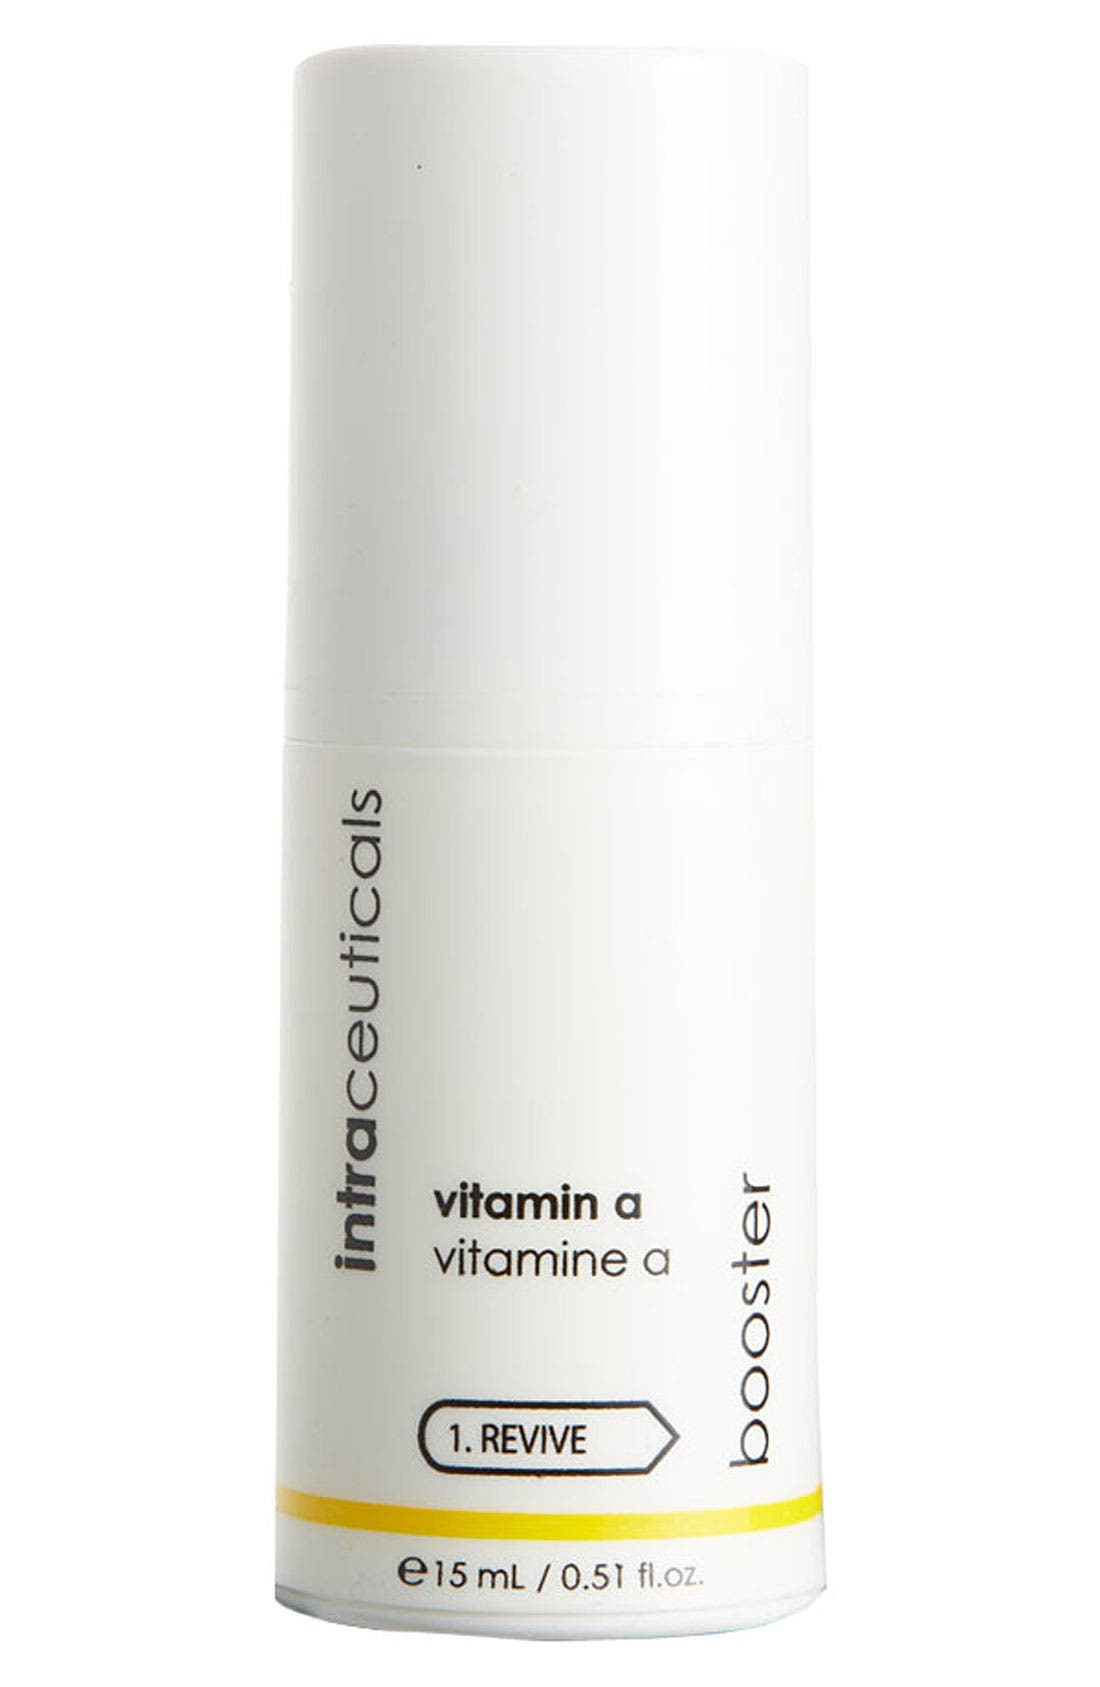 intraceuticals® 'Booster' Vitamin A Serum